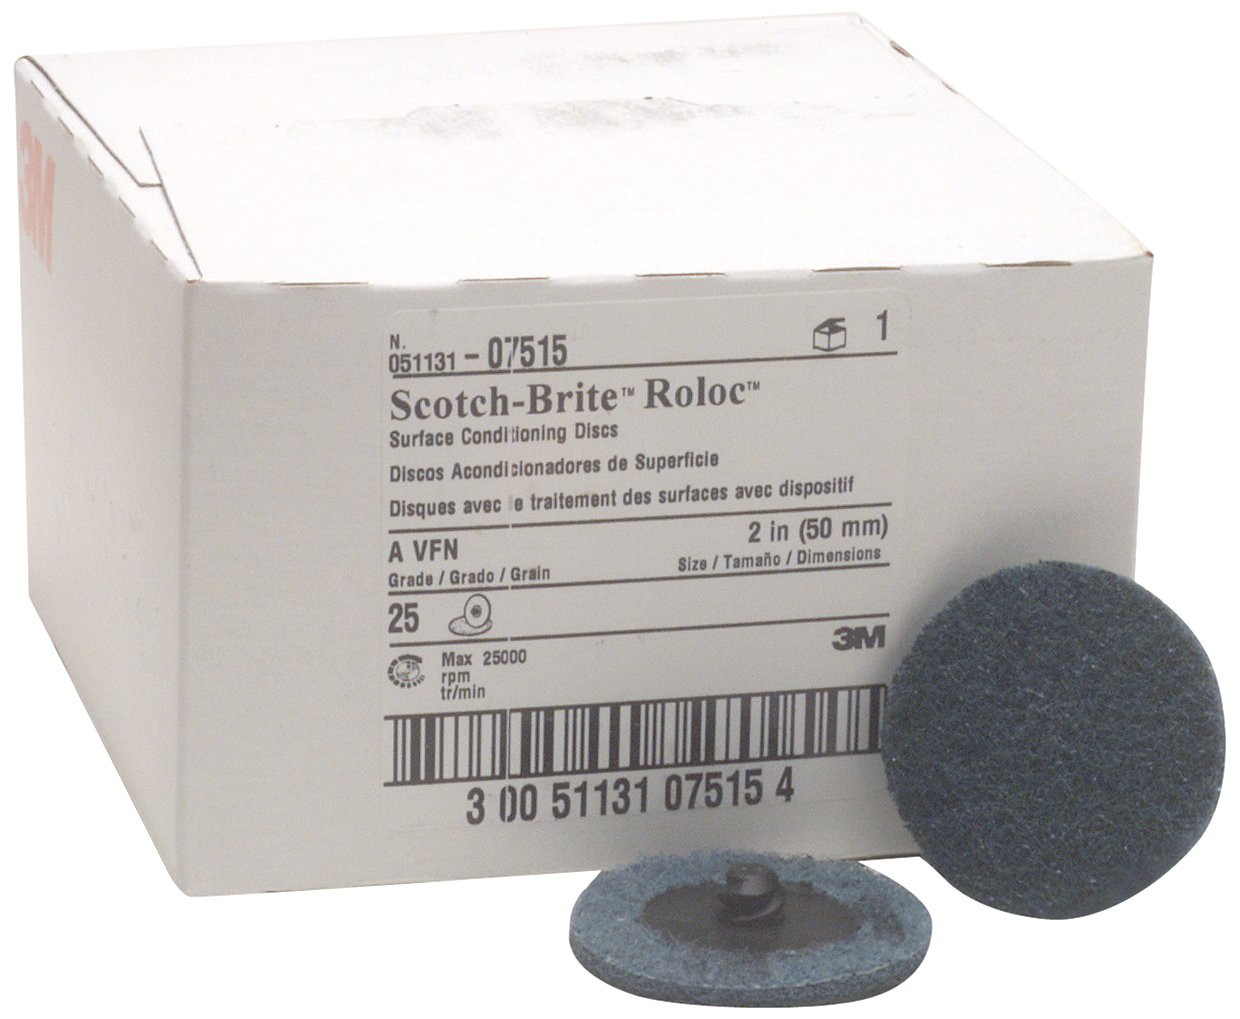 3M 07515 Roloc Surface Conditioning Disc